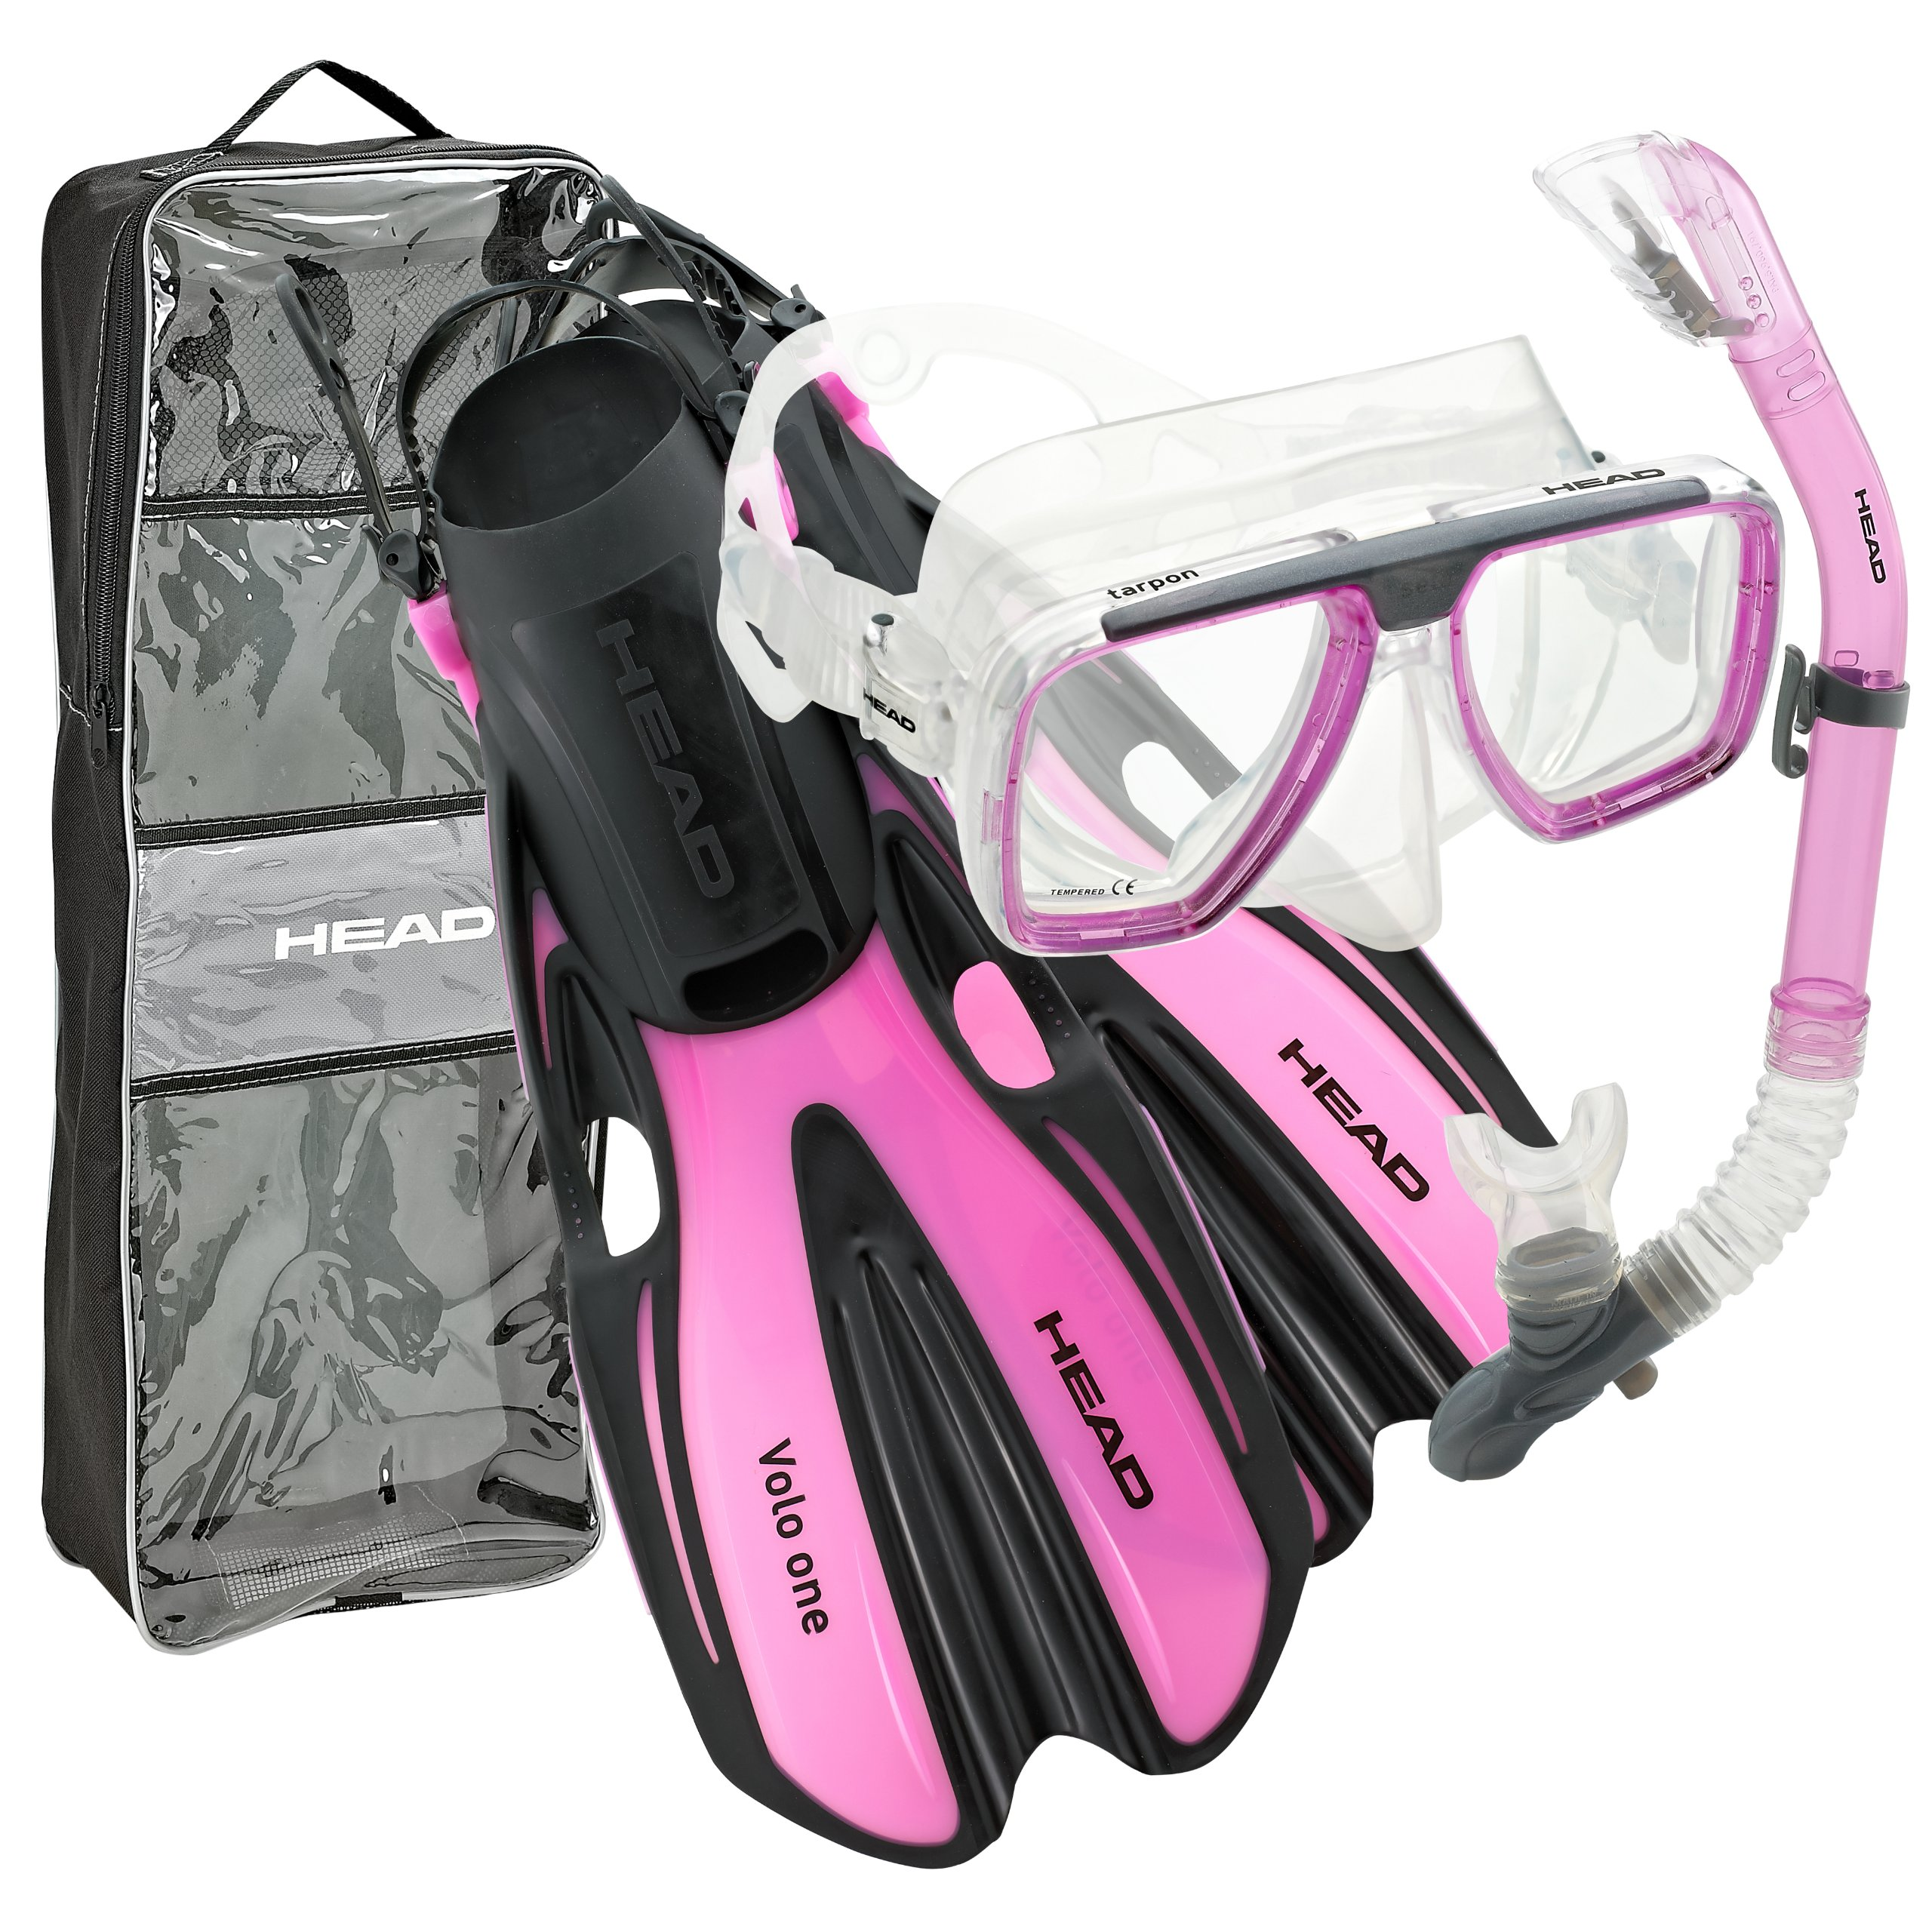 HEAD by Mares Tarpon Travel Friendly Premium Mask Fin Snorkel Set, Pink, Small, (4-6) by HEAD